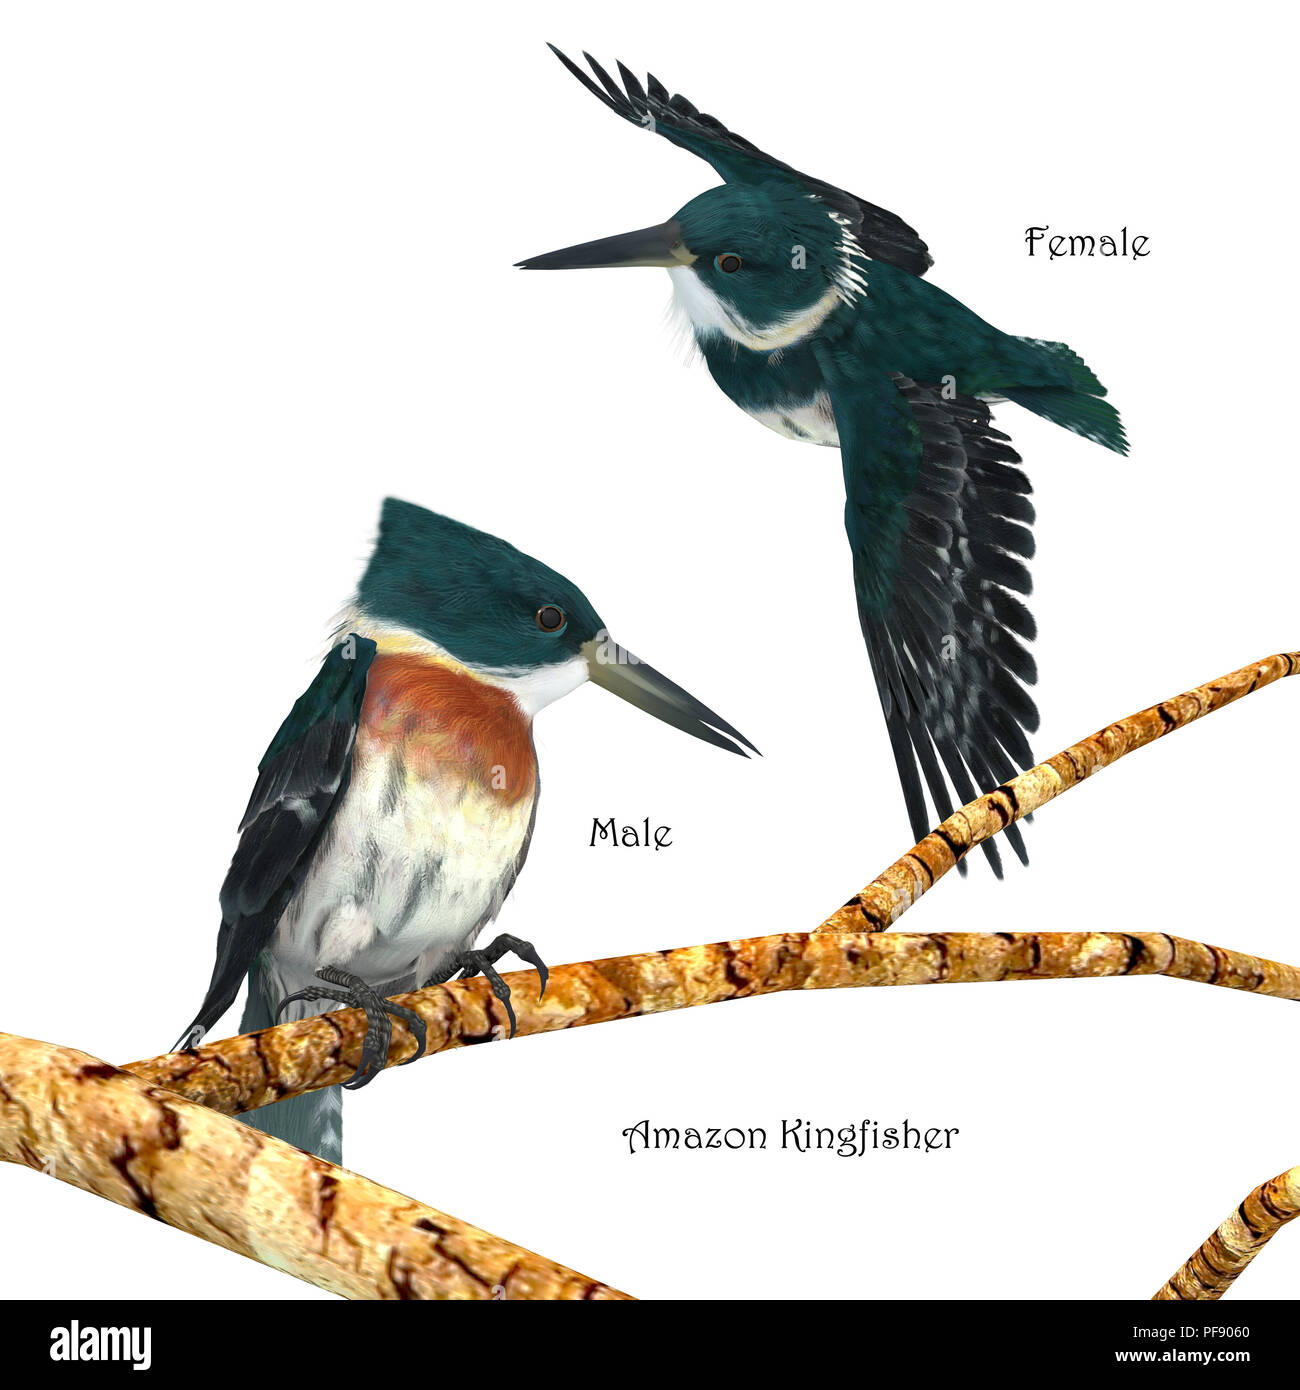 Amazon Kingfisher - Amazon Kingfishers usually perch on a branch near a river and then plunge head first into the water to hunt small prey. - Stock Image